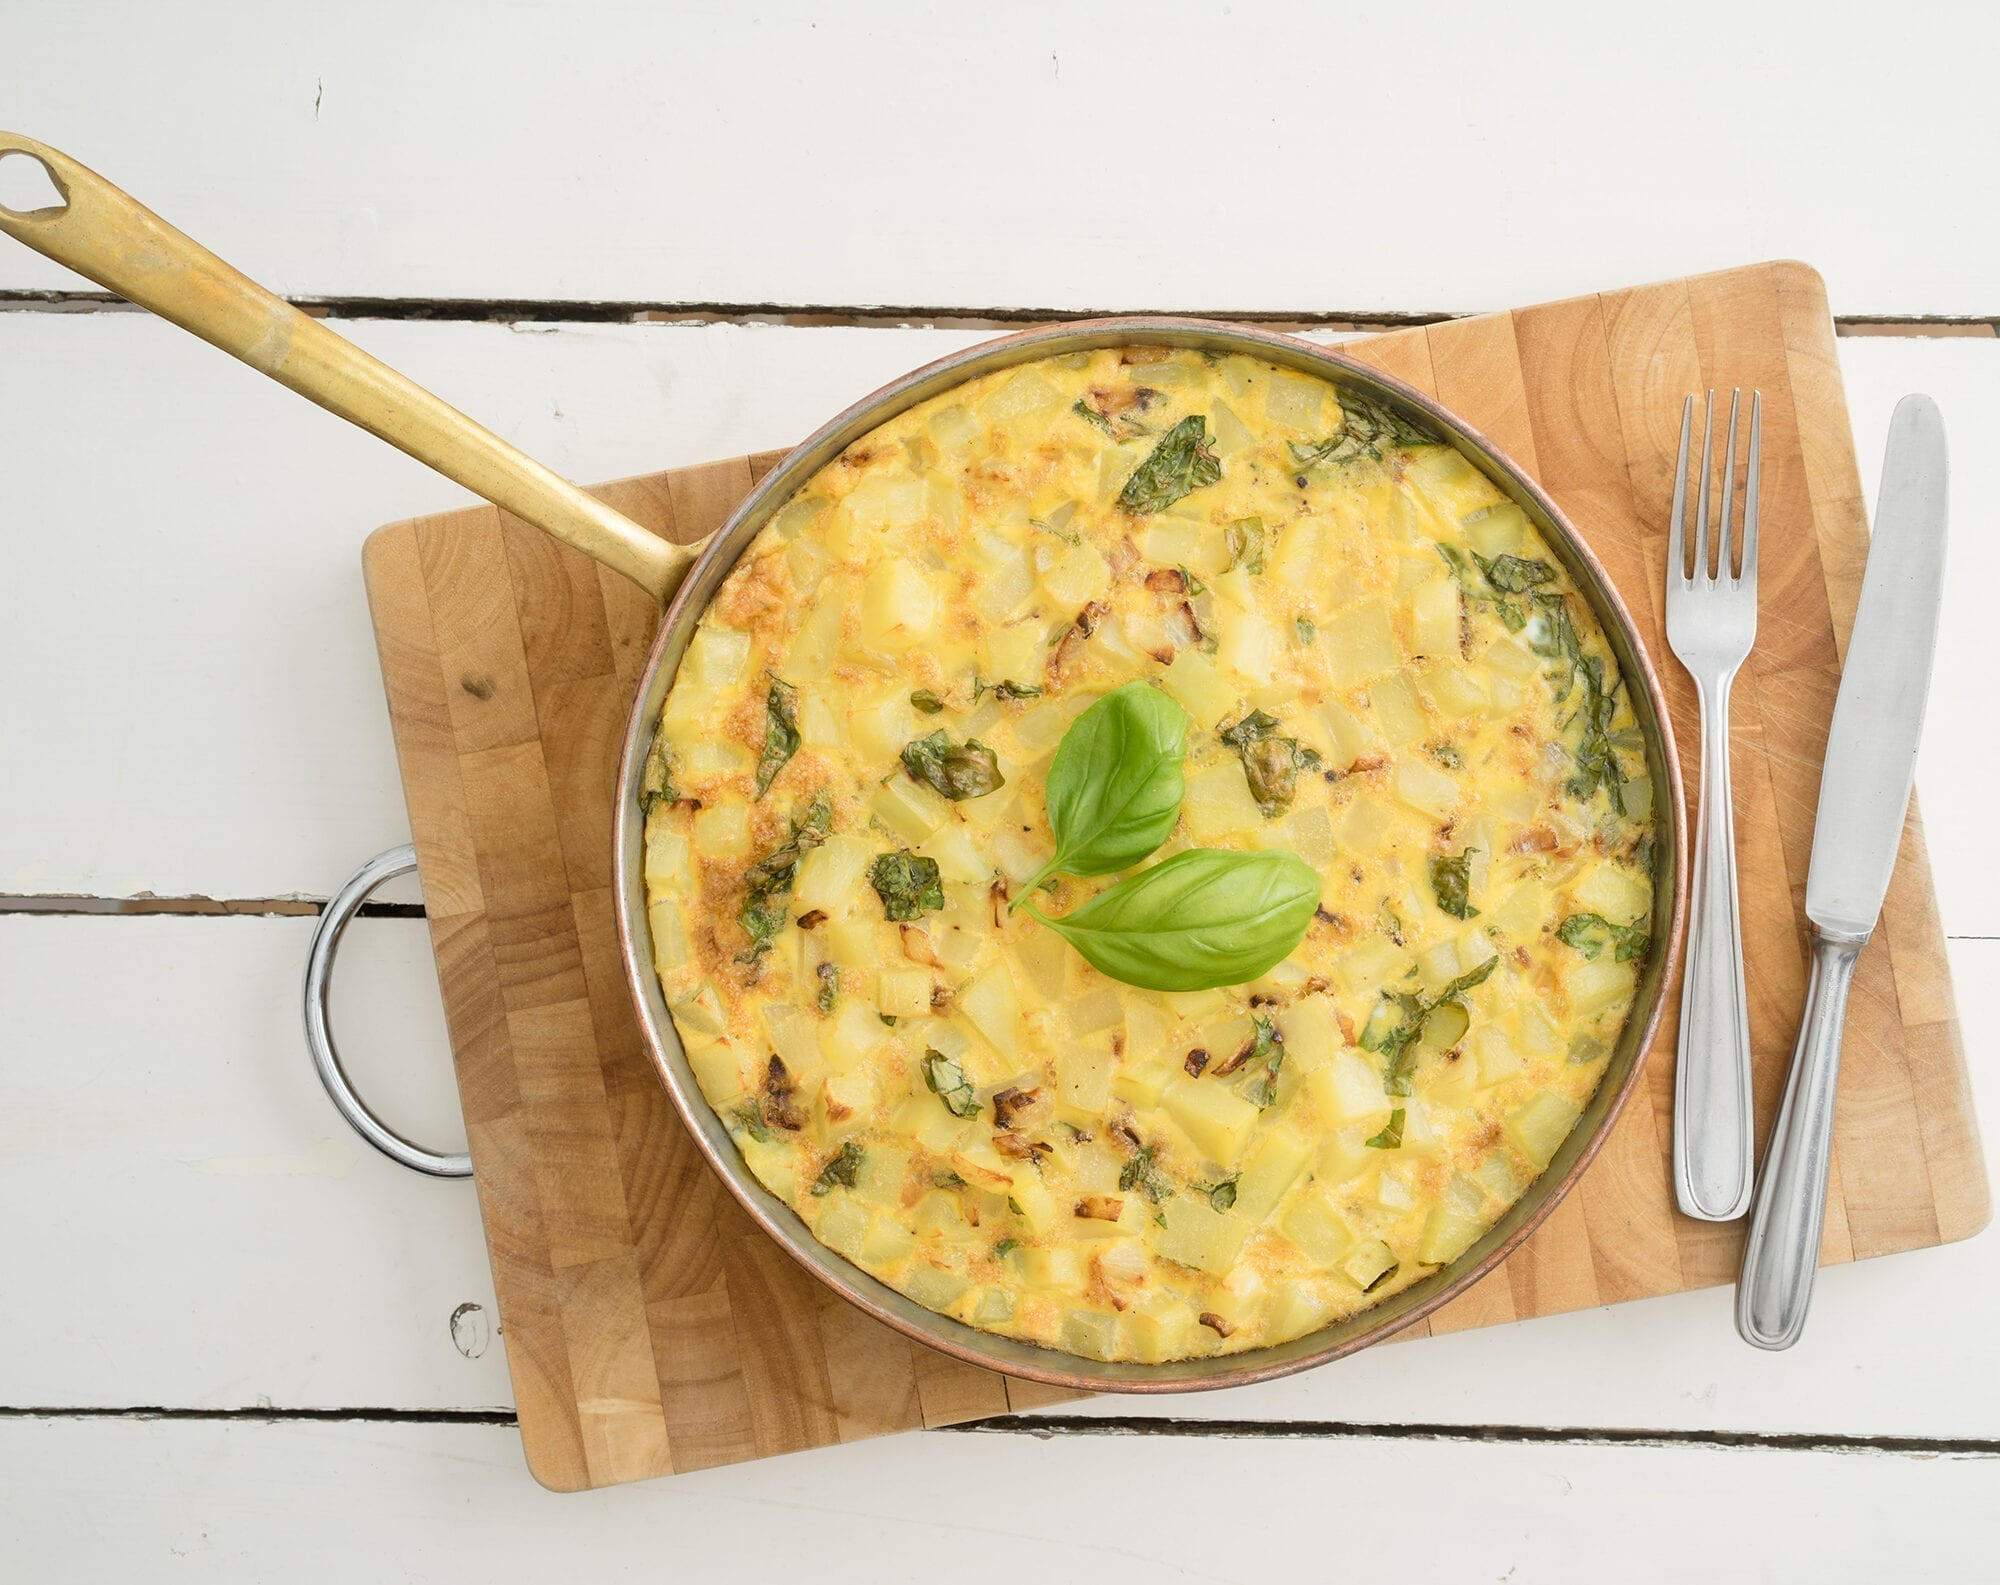 FRITTATA MED BACON, TOMAT & ASPARGES ALLA LCHF